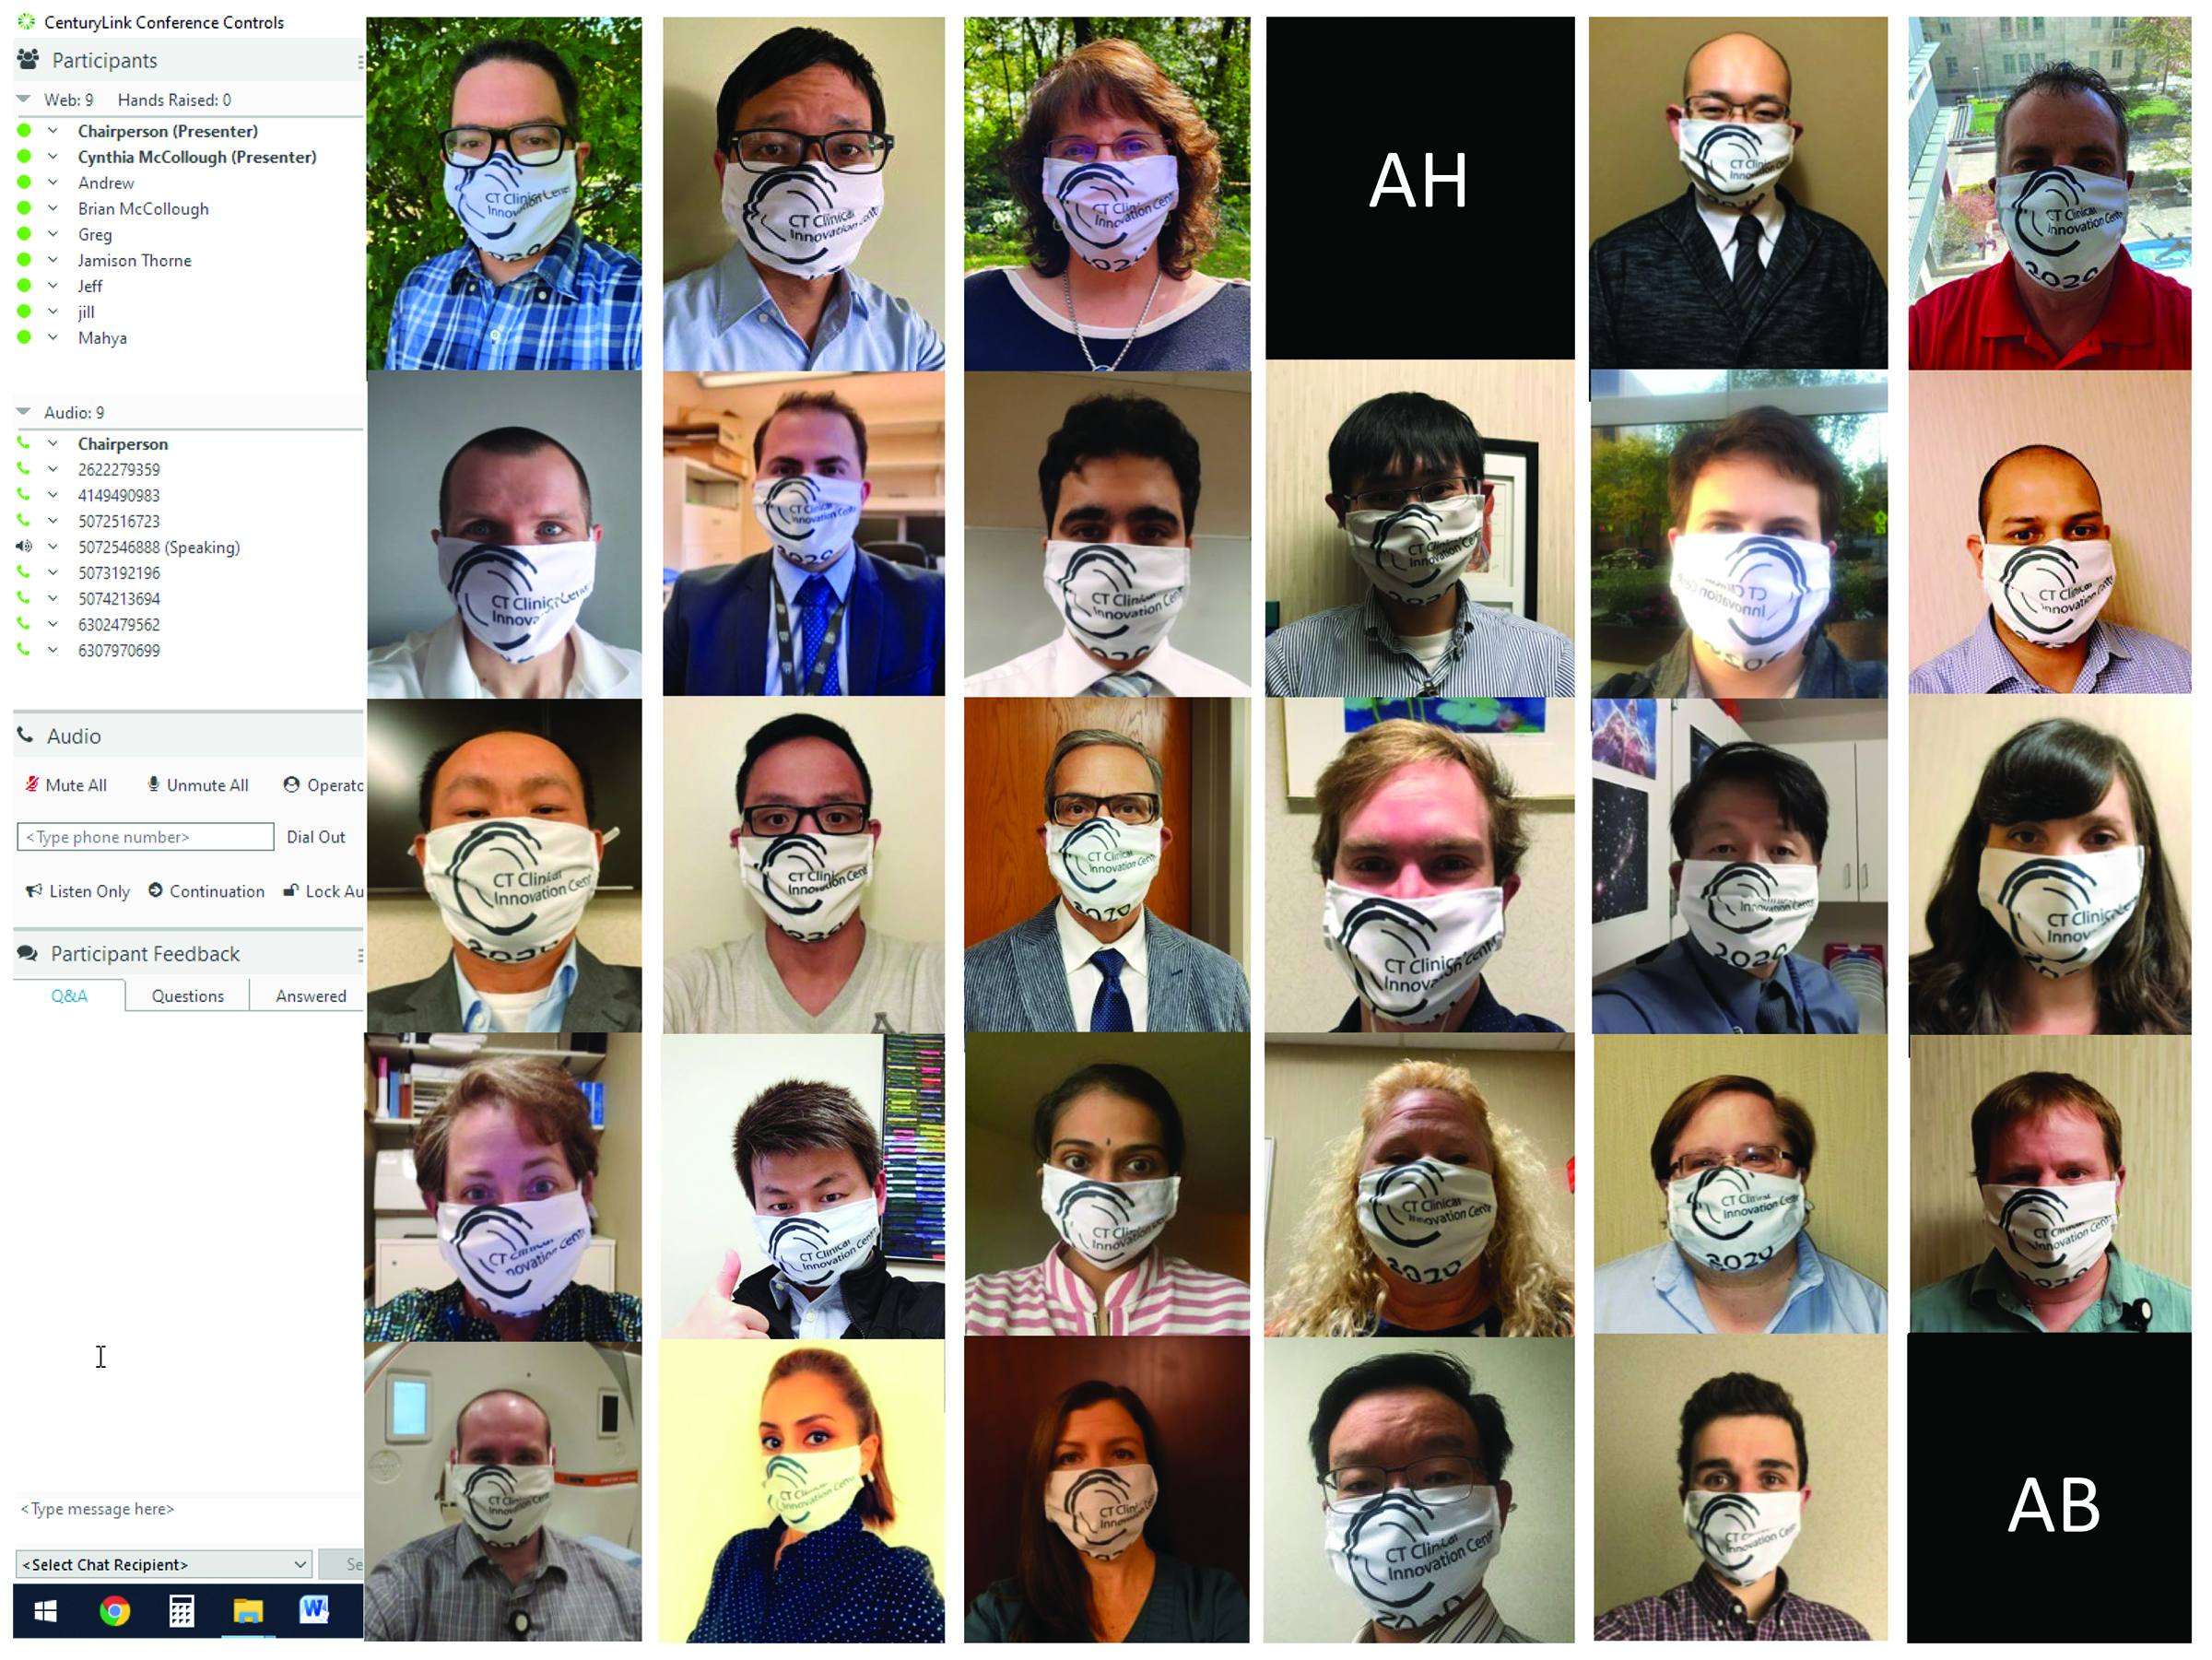 2020_CT CIC group photo_masks